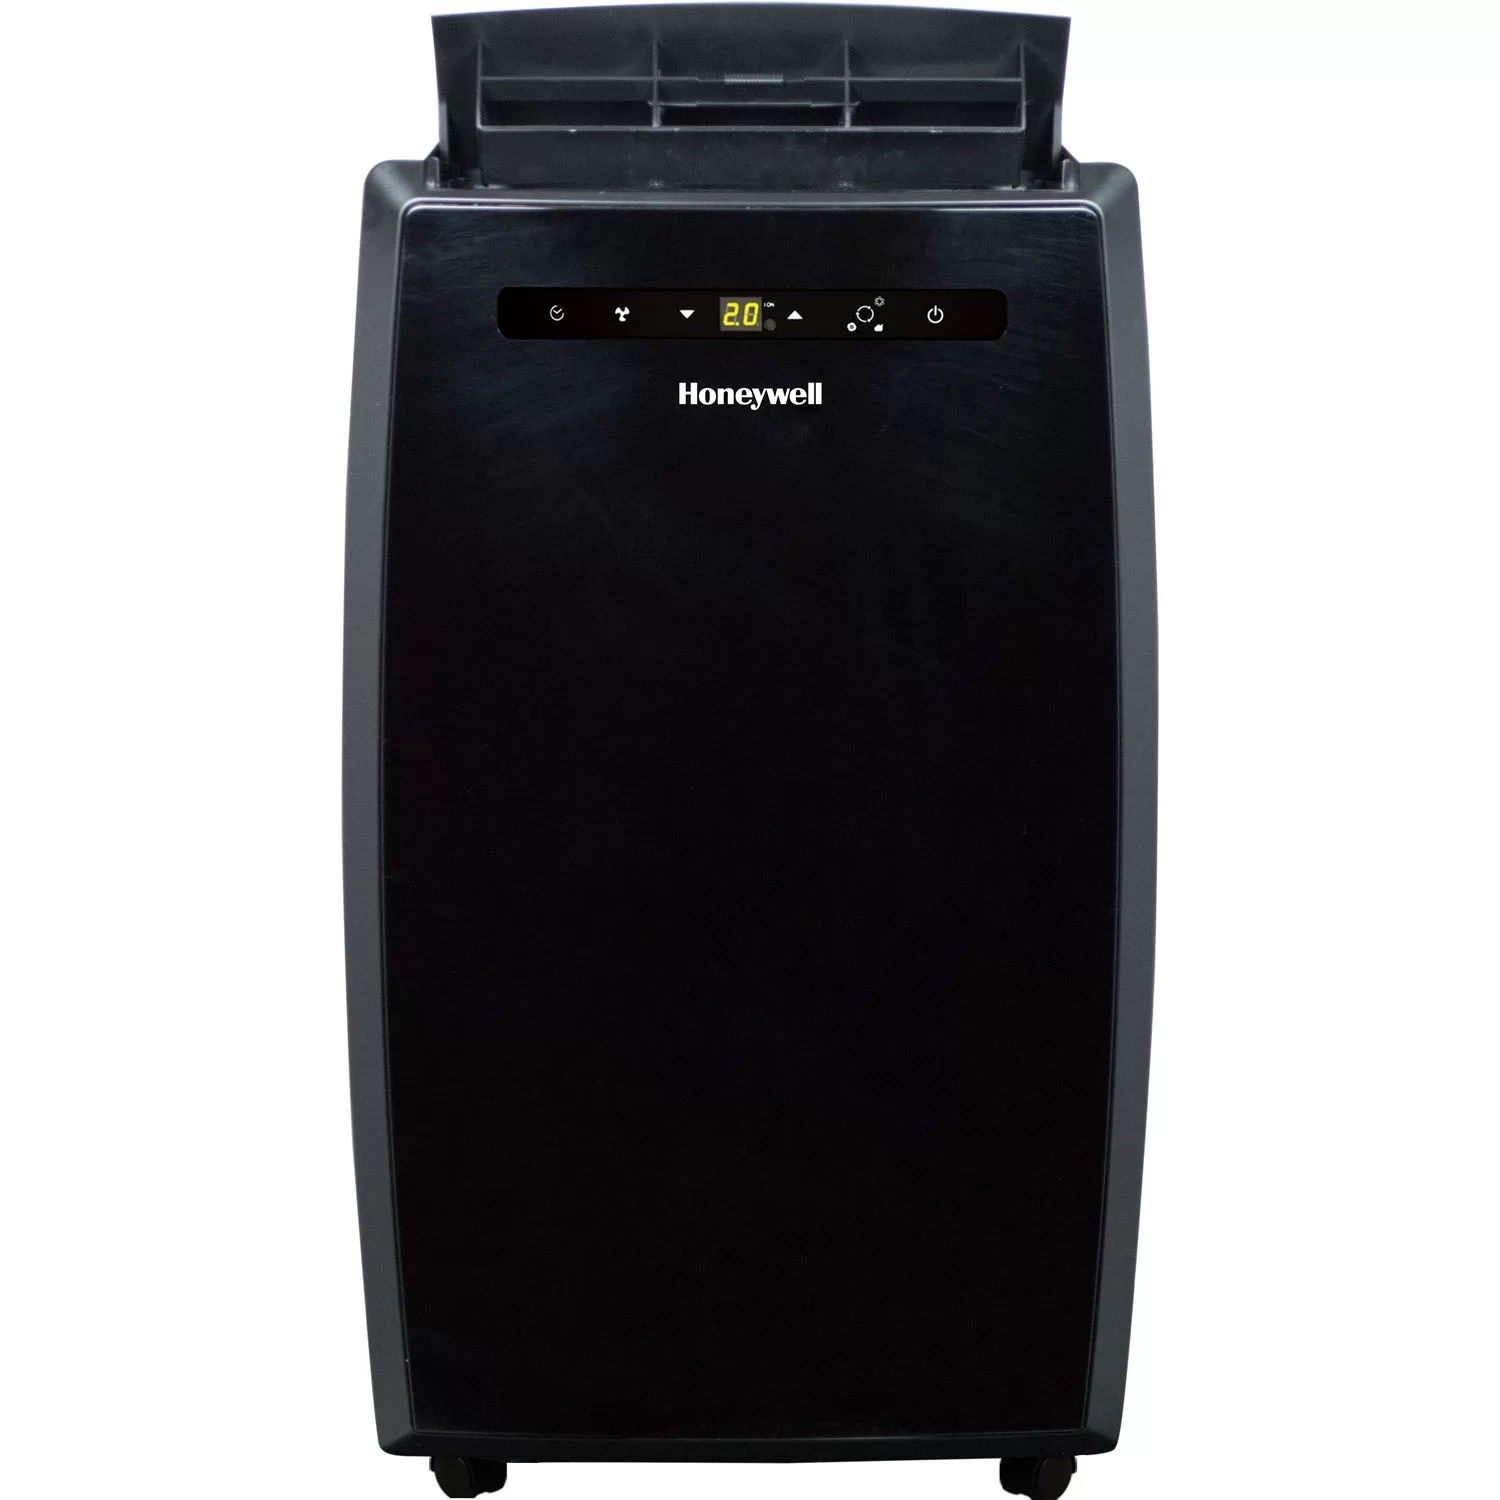 Portable Air Conditioner 12000 Btu Honeywell 12 000 Btu Portable Air Conditioner With Remote